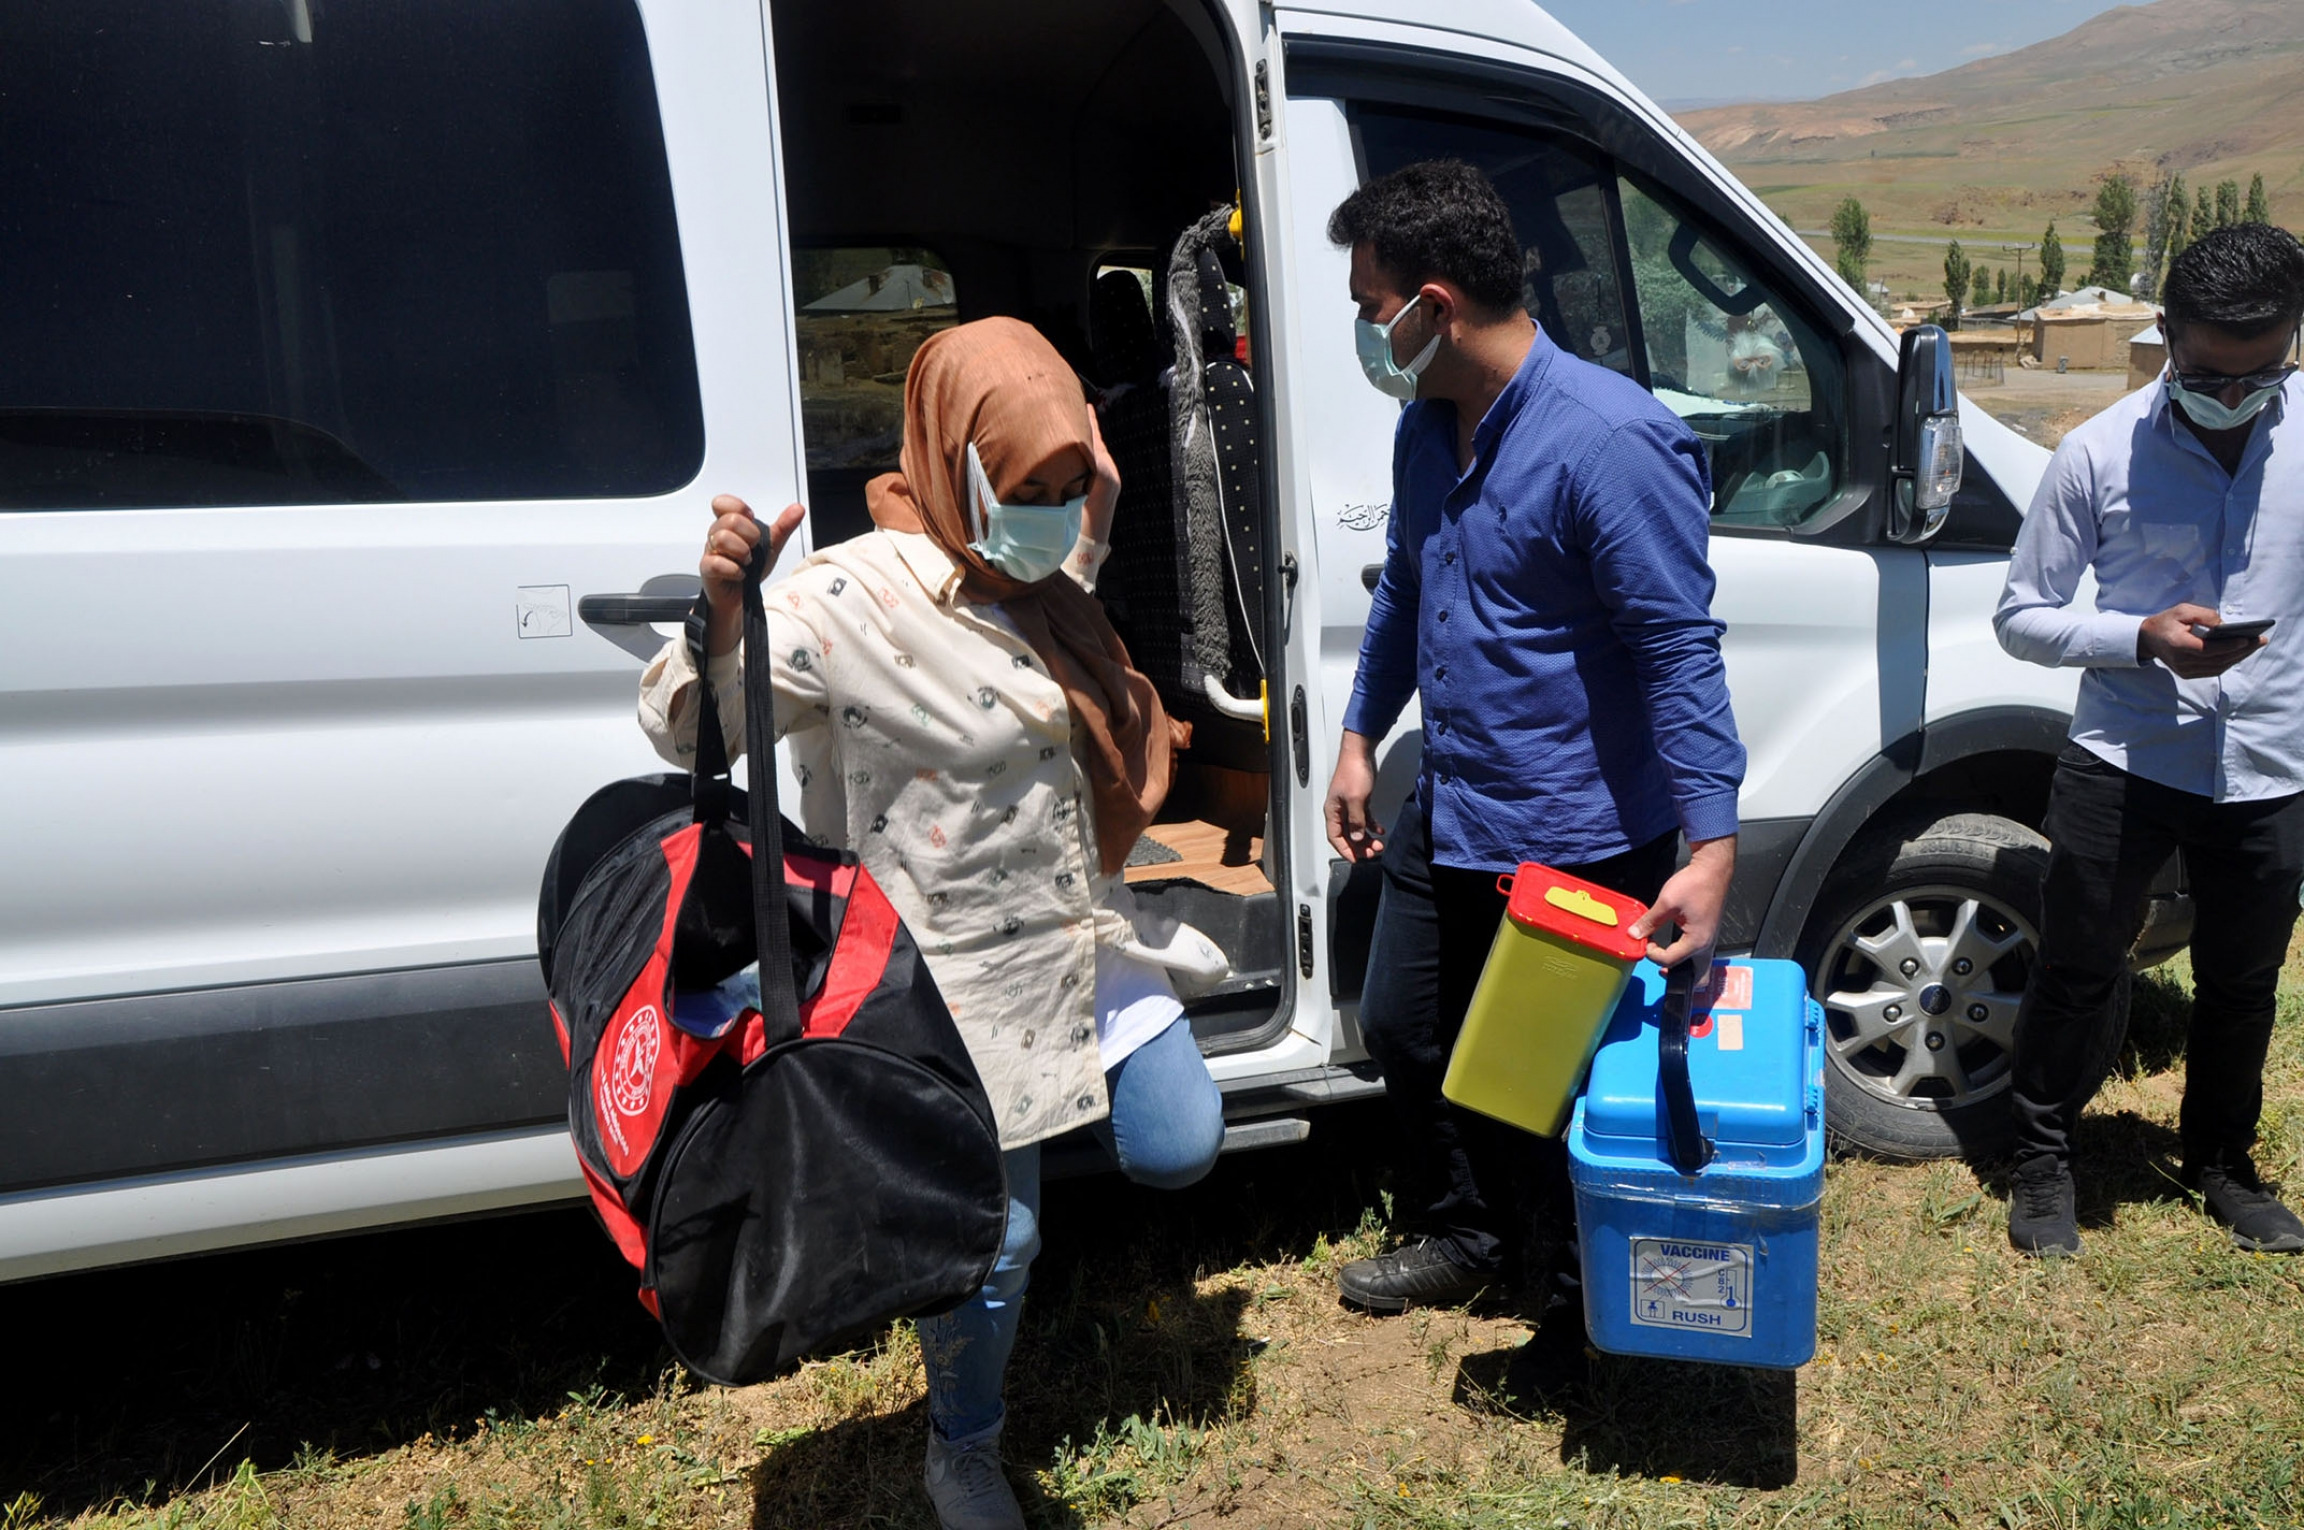 Health workers unload equipment to give out COVID vaccines in Ömerova, a village in Turkey's eastern Kurdish region.